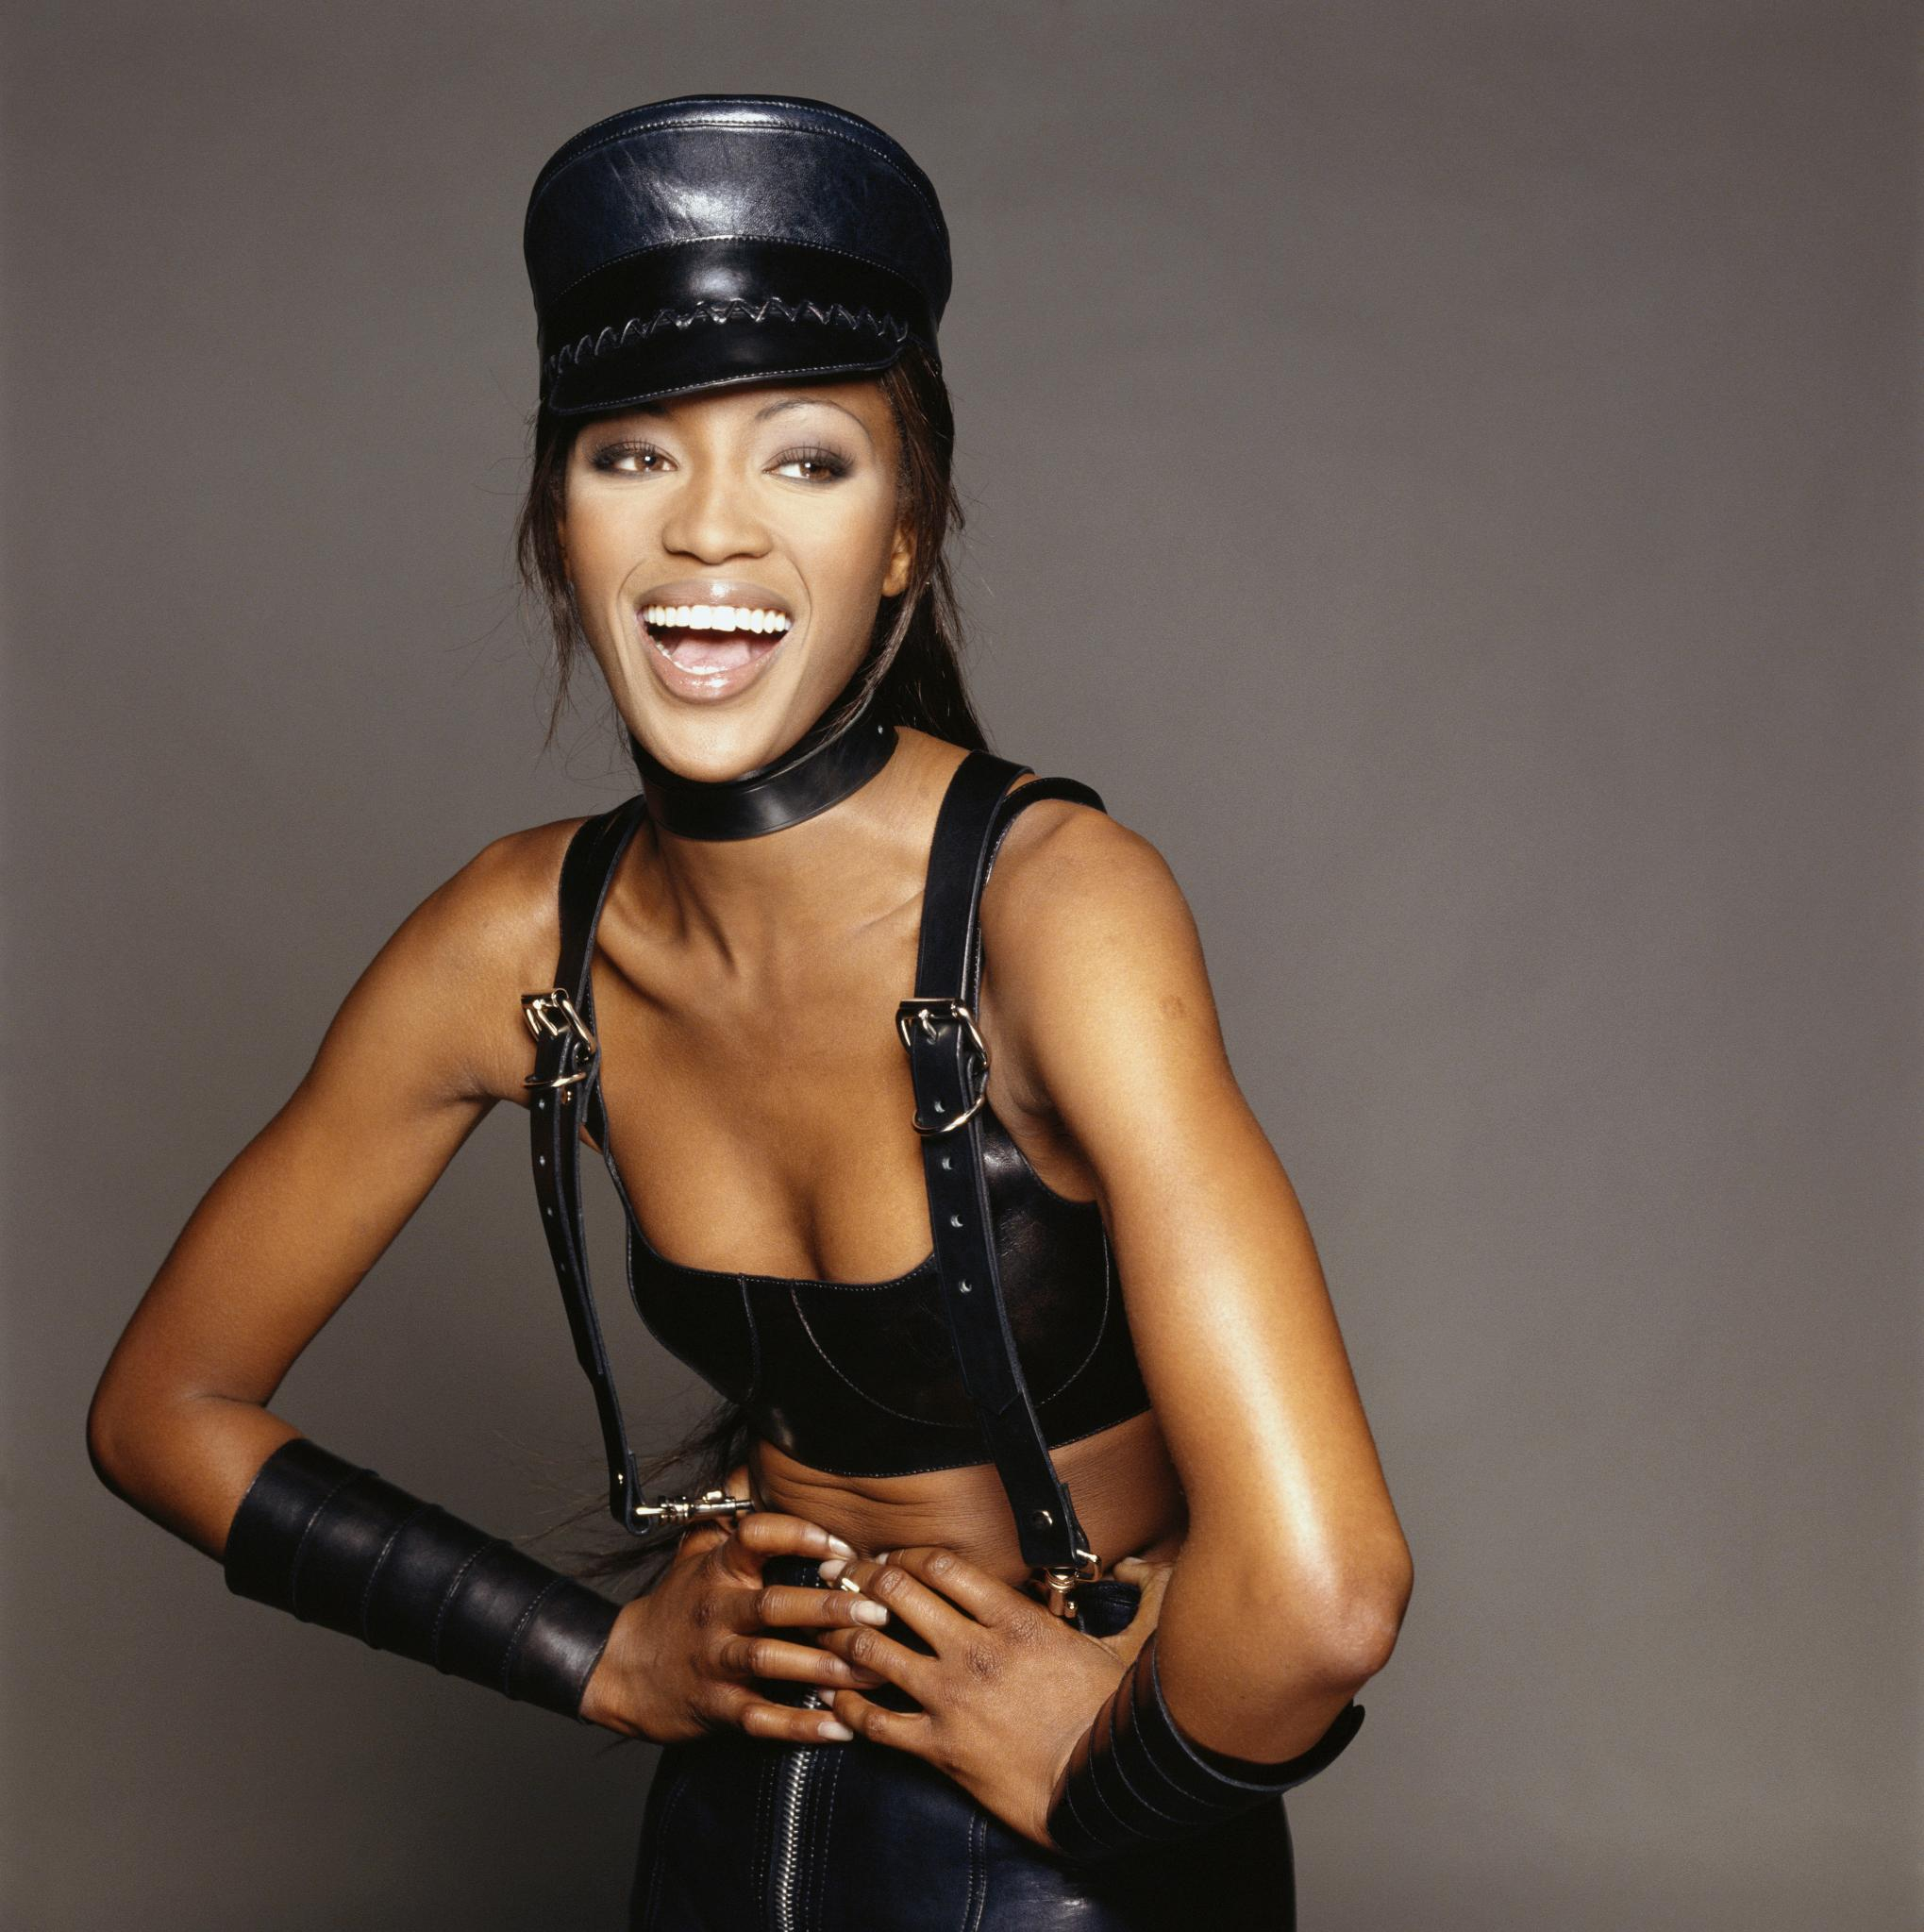 Happy birthday to supermodel Naomi Campbell, born on this day in 1970.